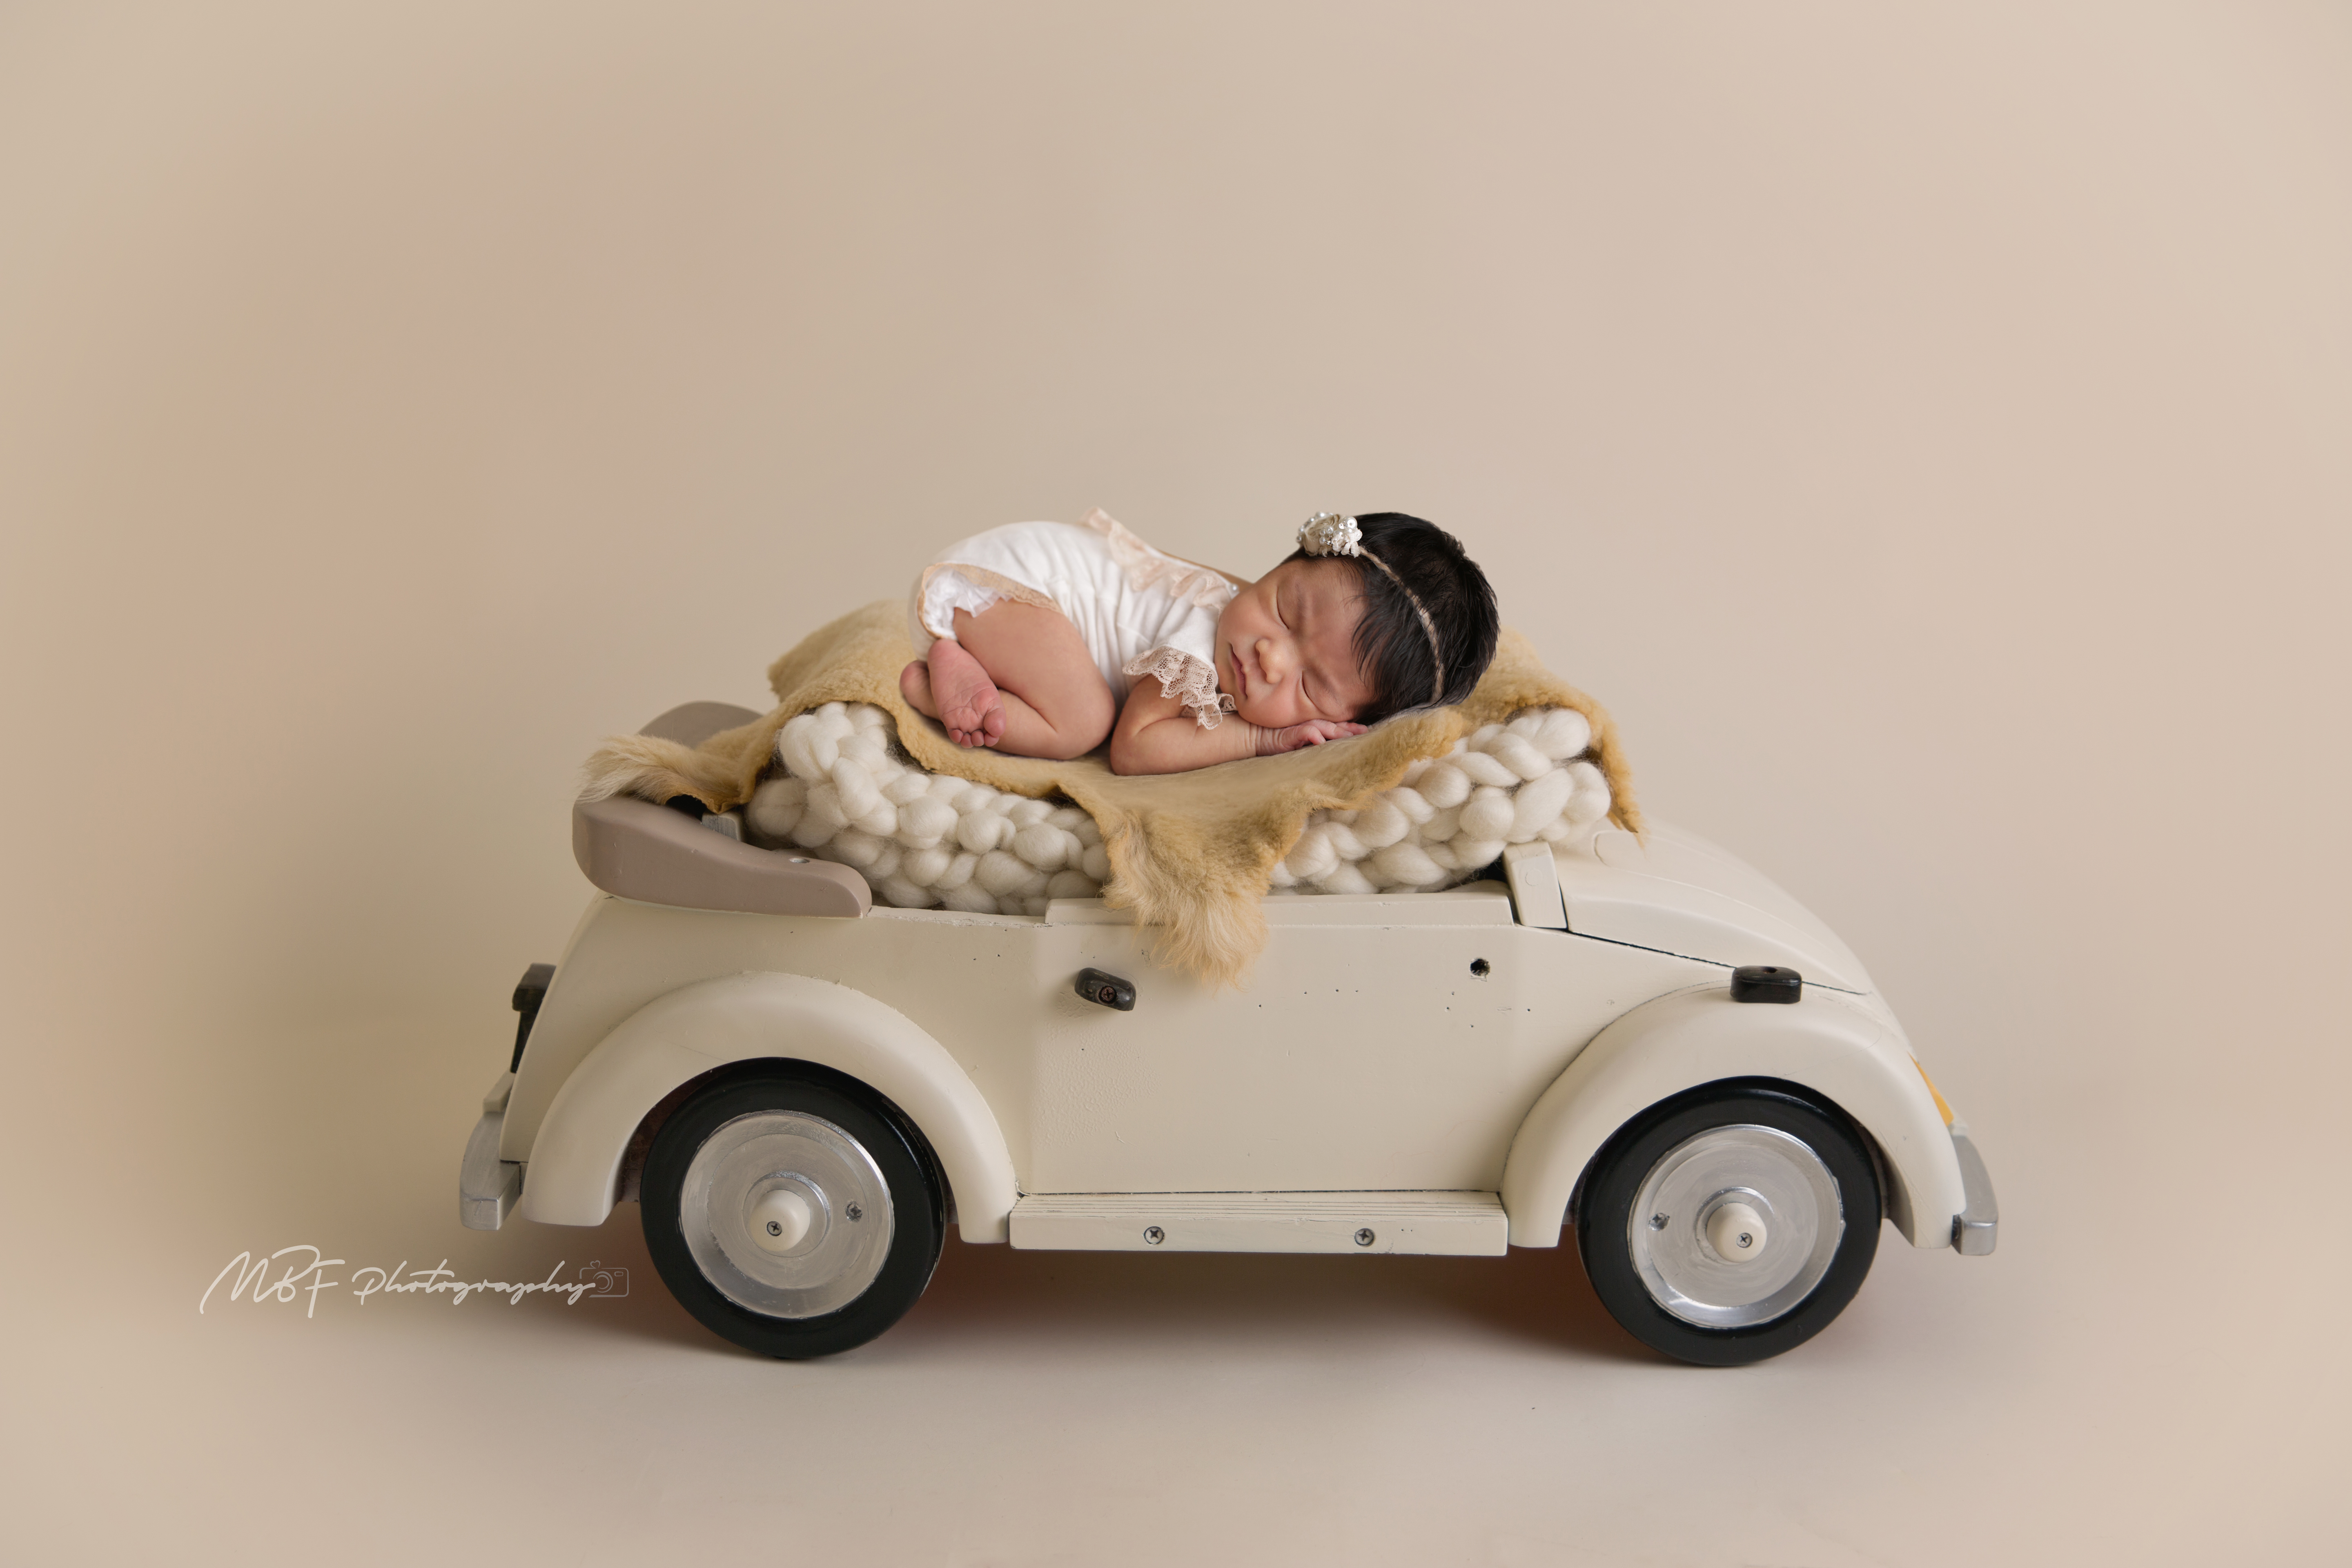 Newborn photography Las Vegas,MBF Photography